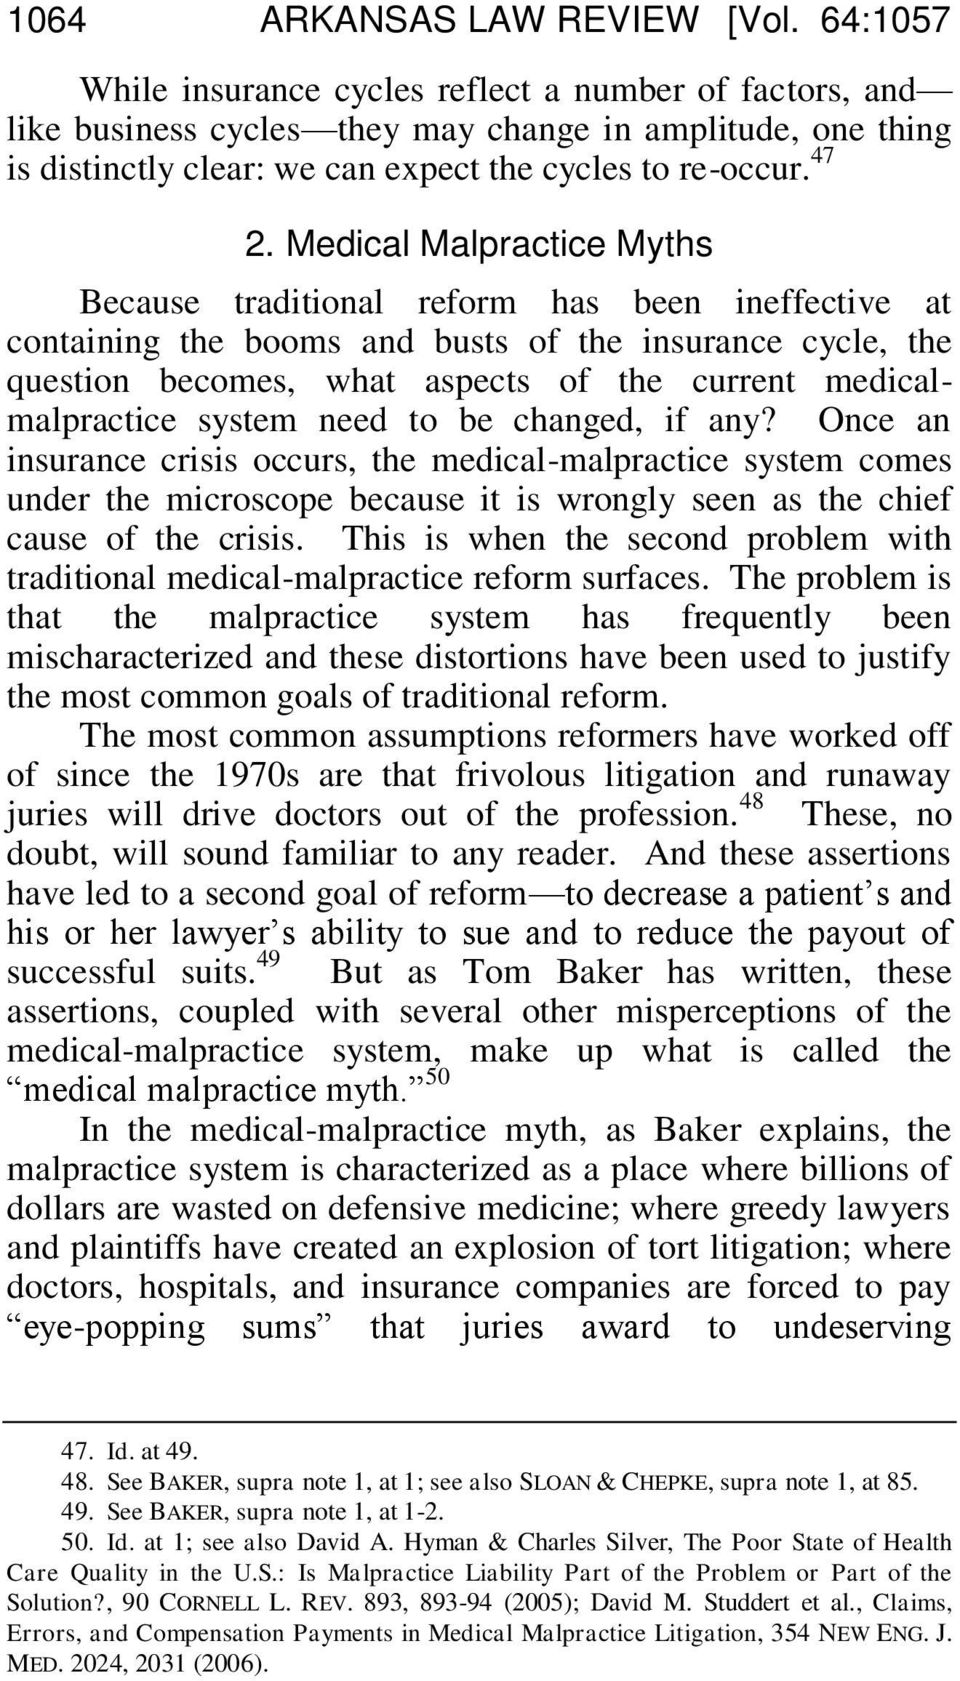 Medical Malpractice Myths Because traditional reform has been ineffective at containing the booms and busts of the insurance cycle, the question becomes, what aspects of the current